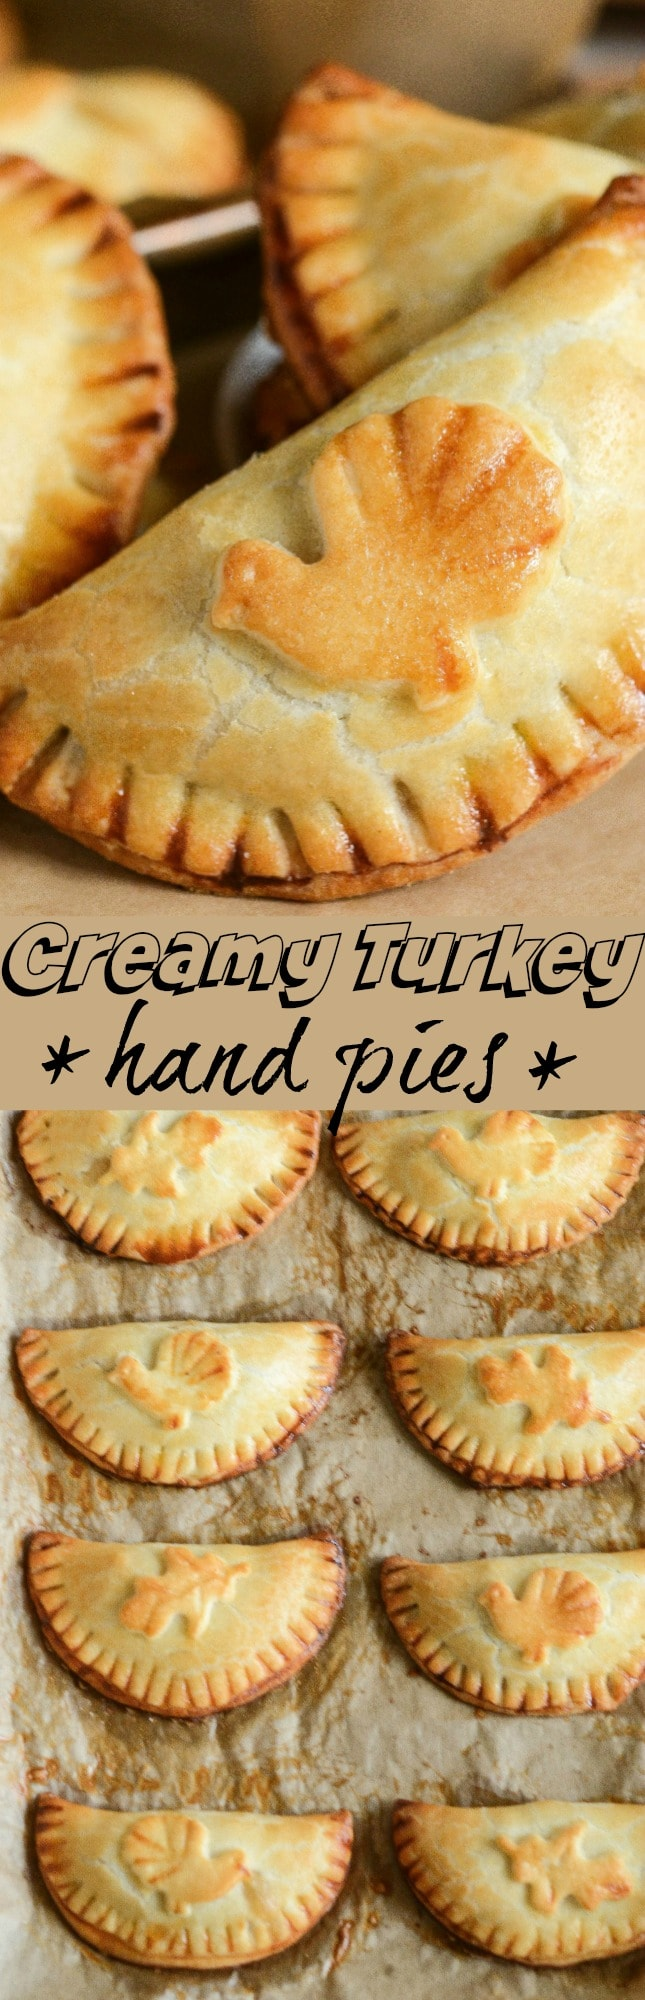 Creamy Turkey Hand Pies: warm flaky turnovers are stuffed with a delicious turkey filling made with herbs, gravy and onion and then baked until golden brown!